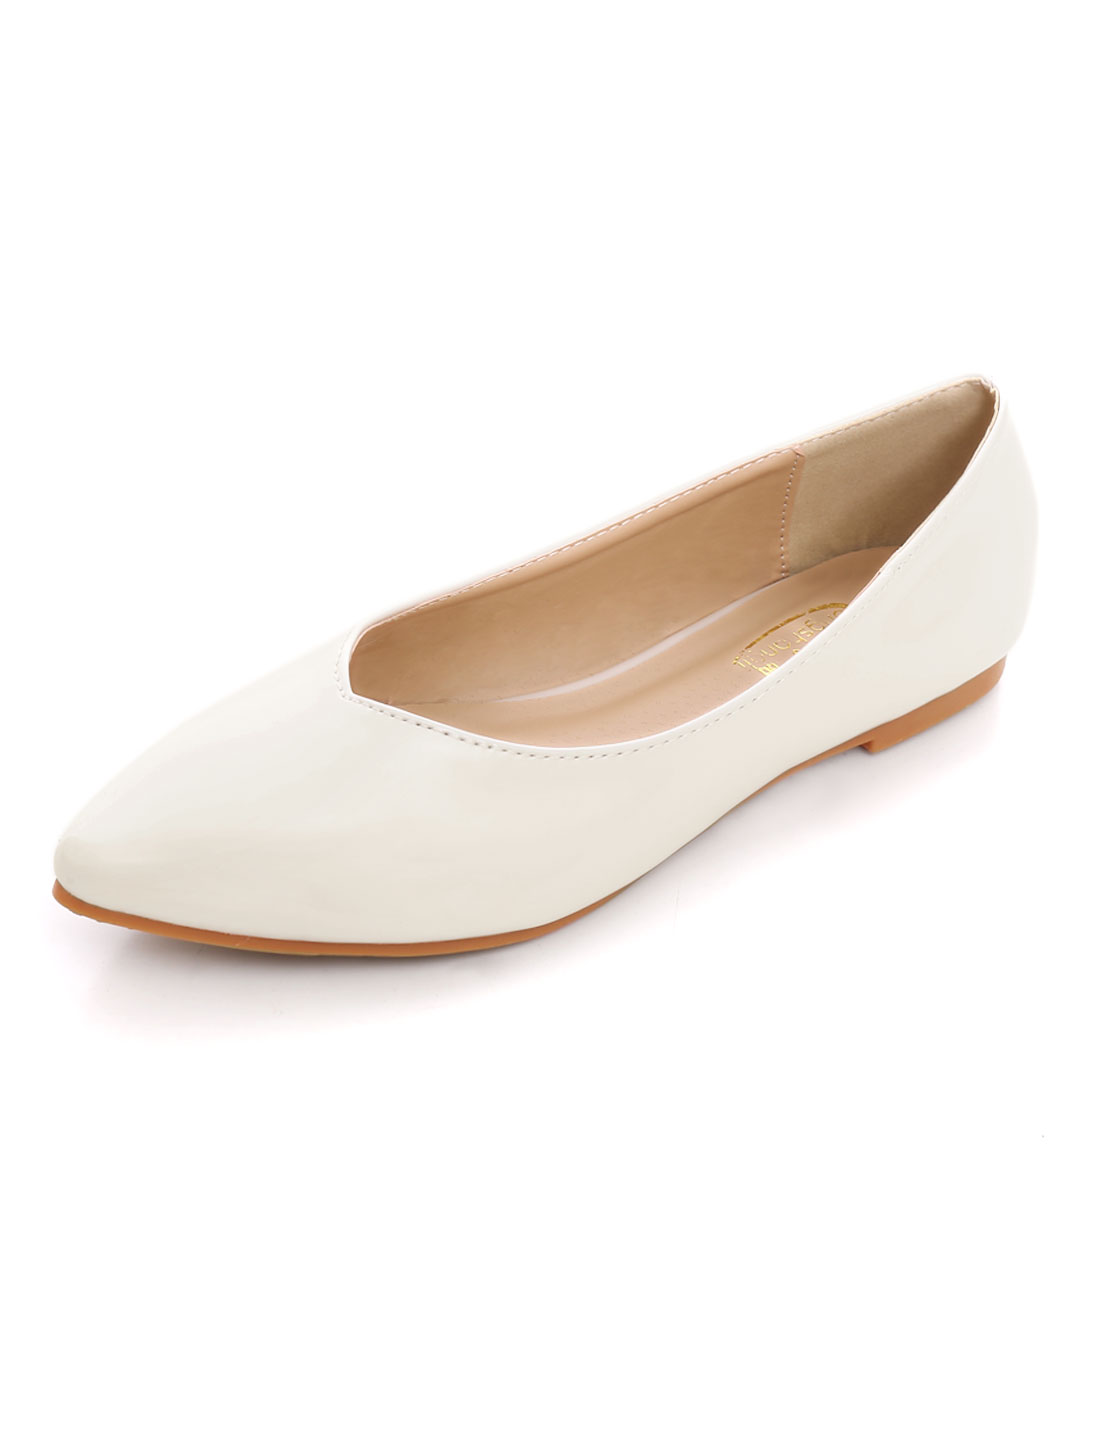 Woman Patent-Leather Point-Toe Casual Ballet Shoes Flat White US 8